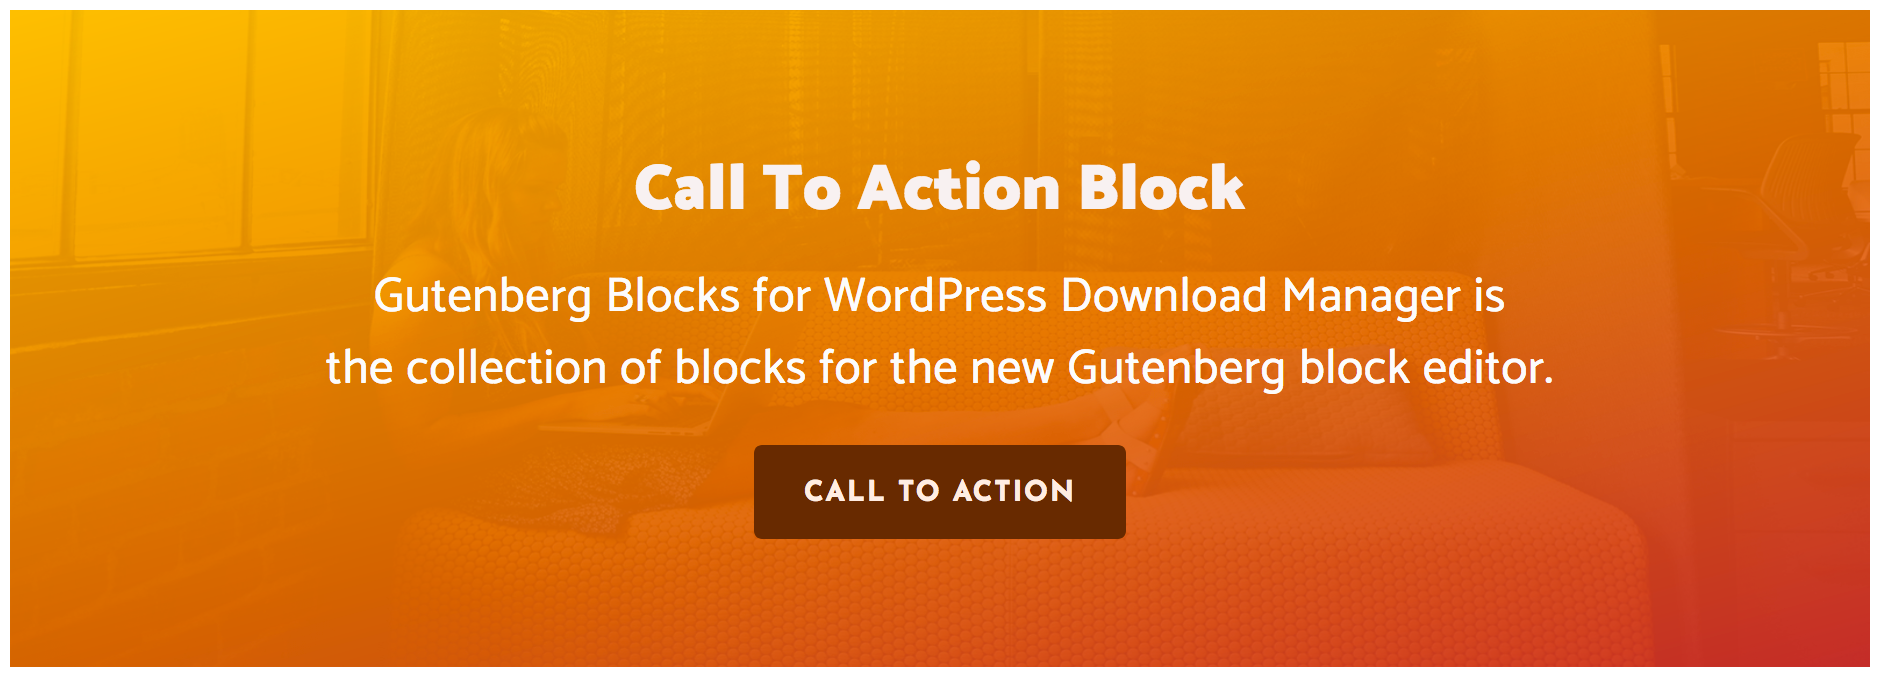 Gutenber Block - Call To Action